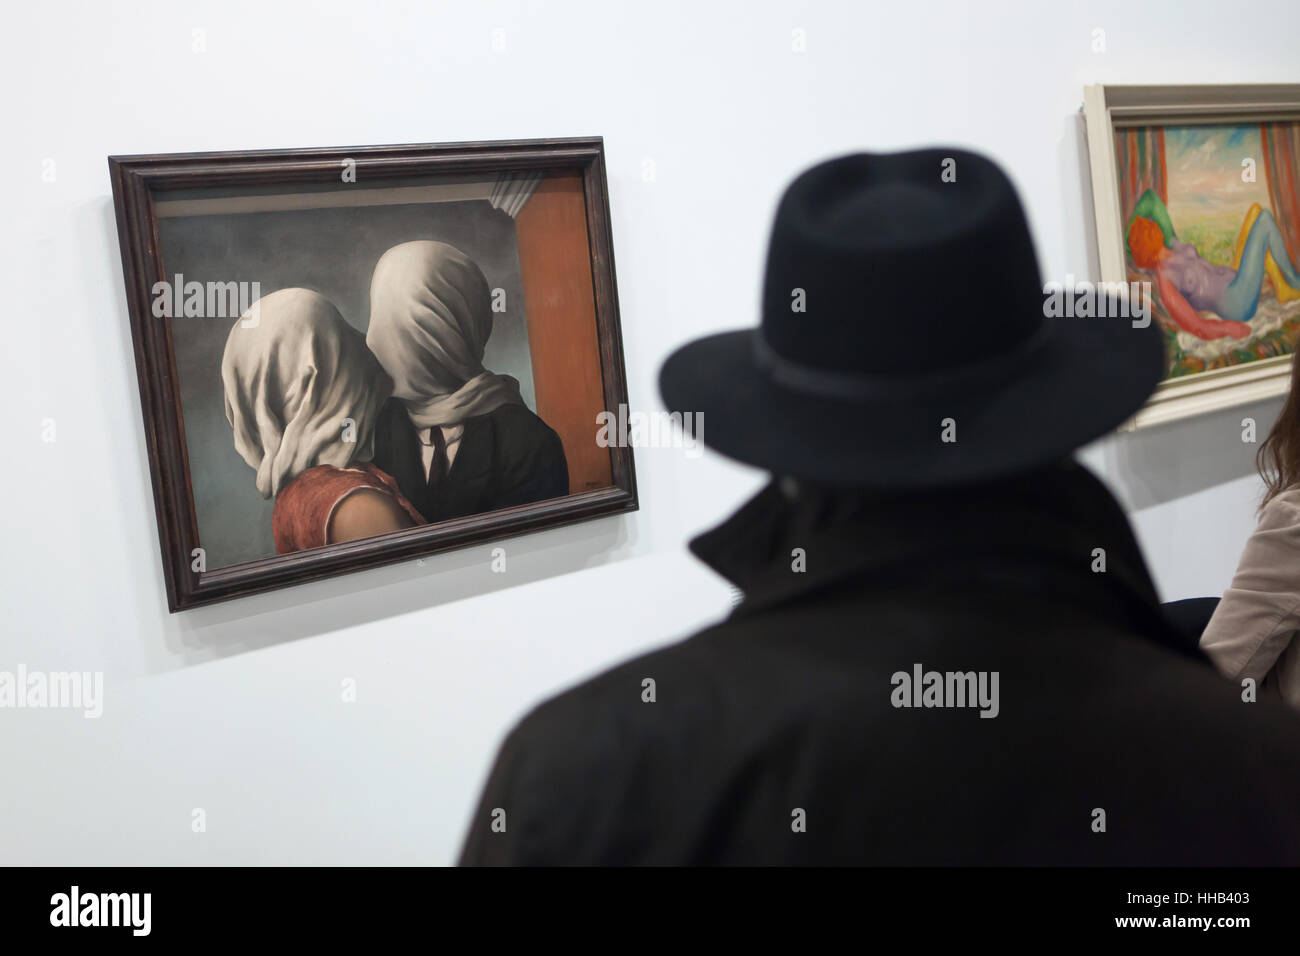 Visitor in front of the painting Les Amants (The Lovers, 1928) by Belgian surrealist artist Rene Magritte displayed - Stock Image